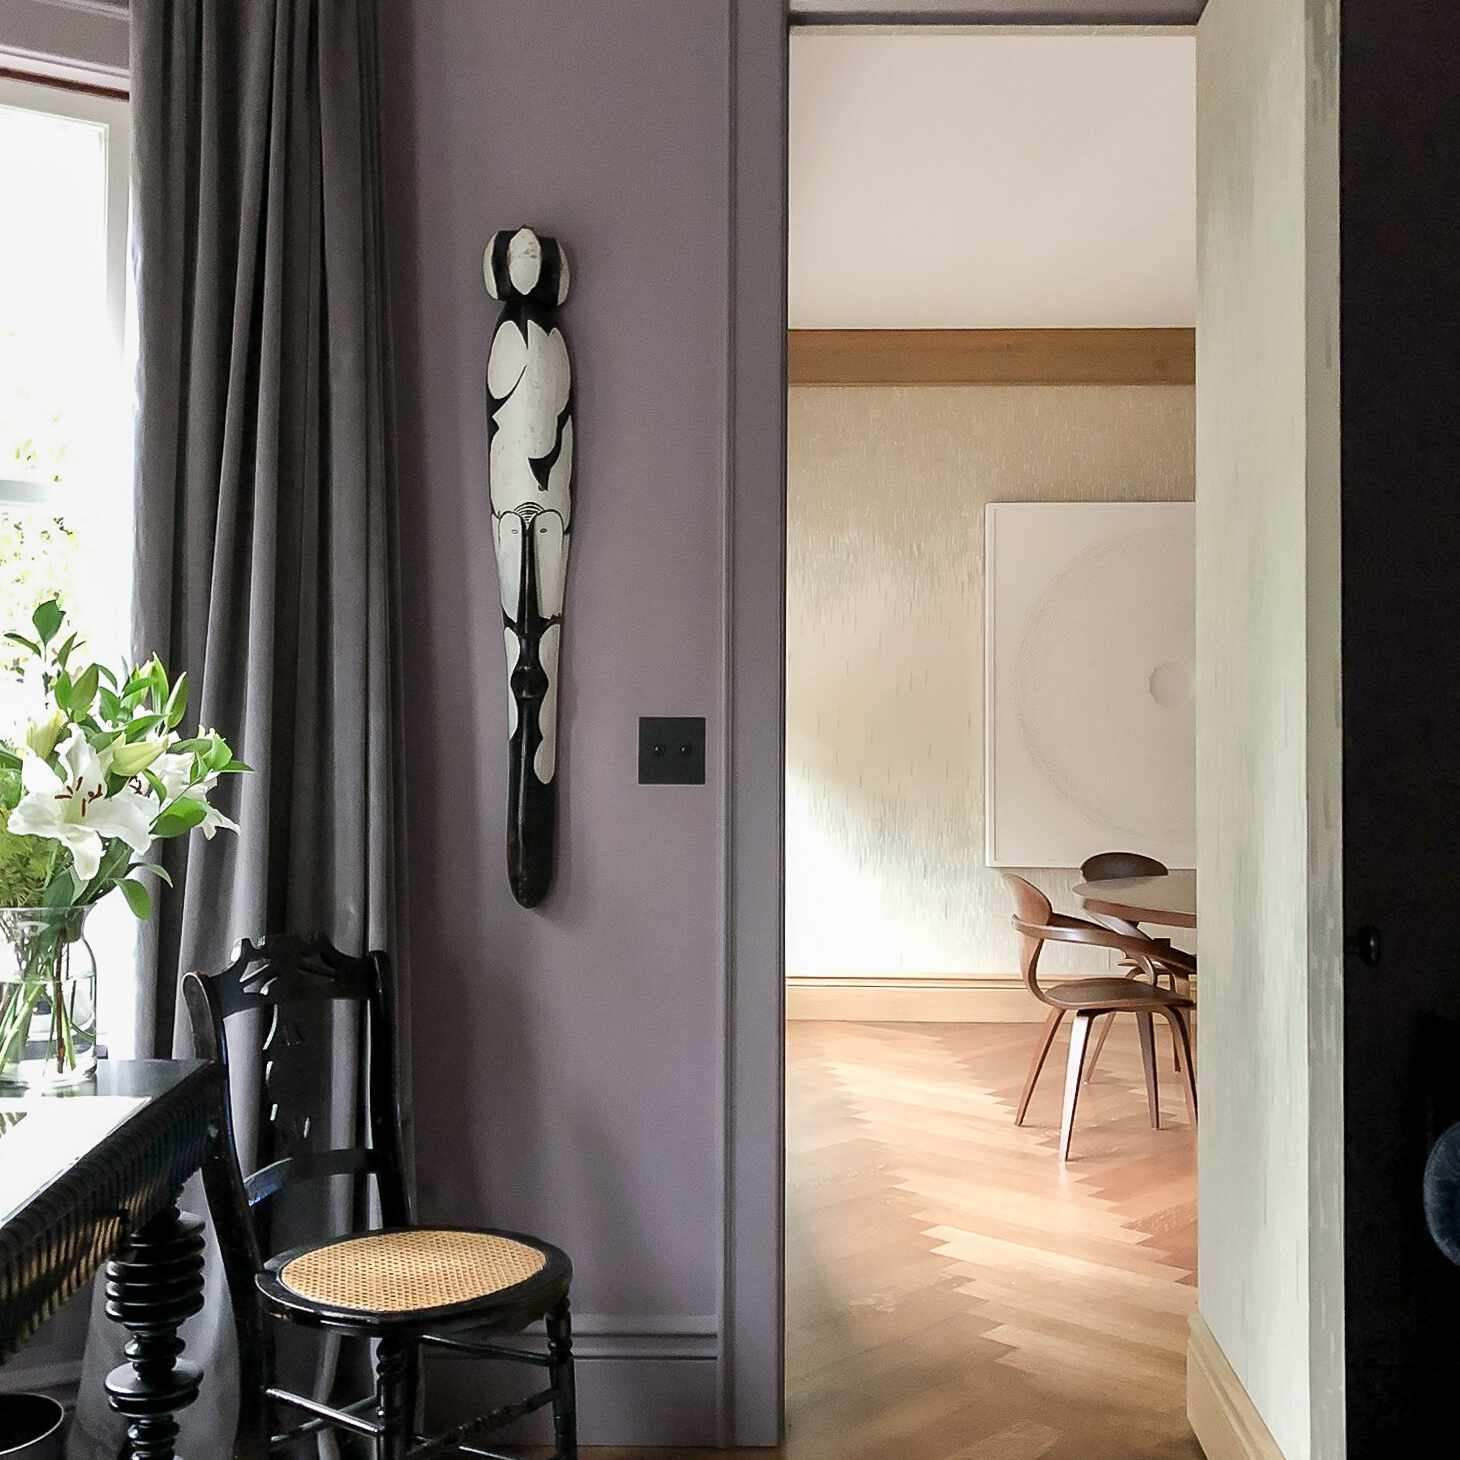 Room with purple gray walls